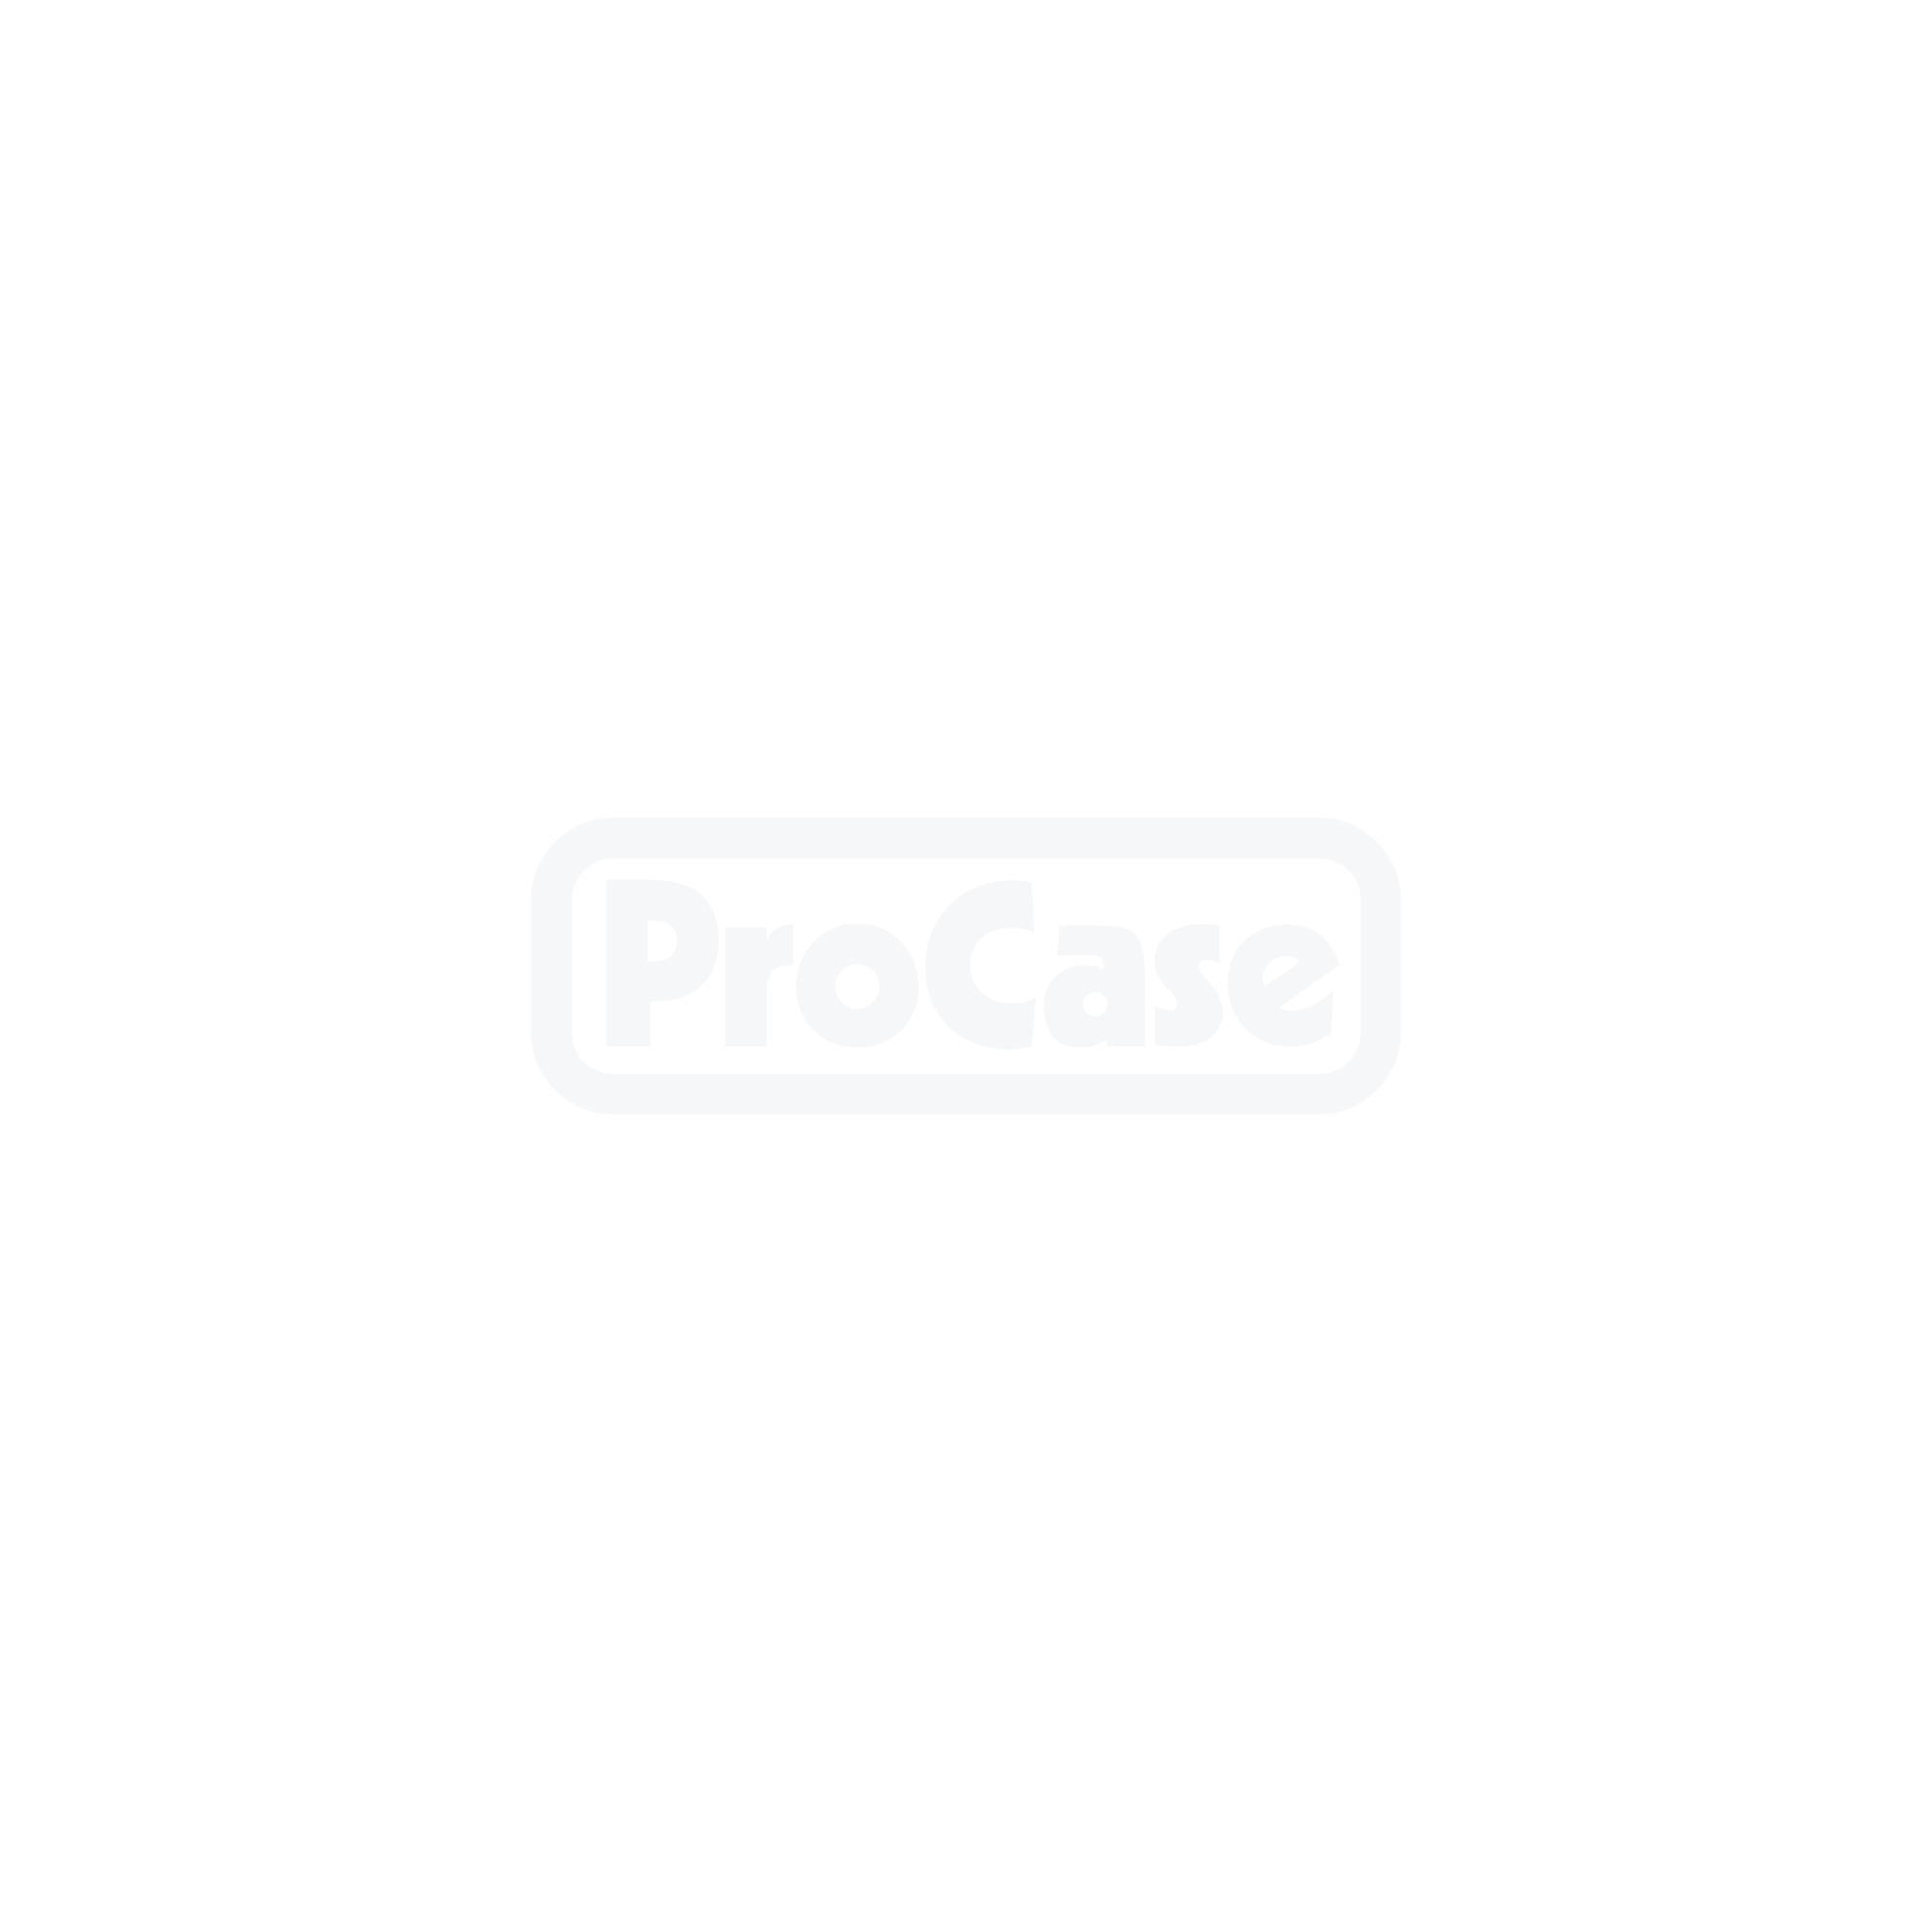 Flightcase für Tridelity MV6500 Display